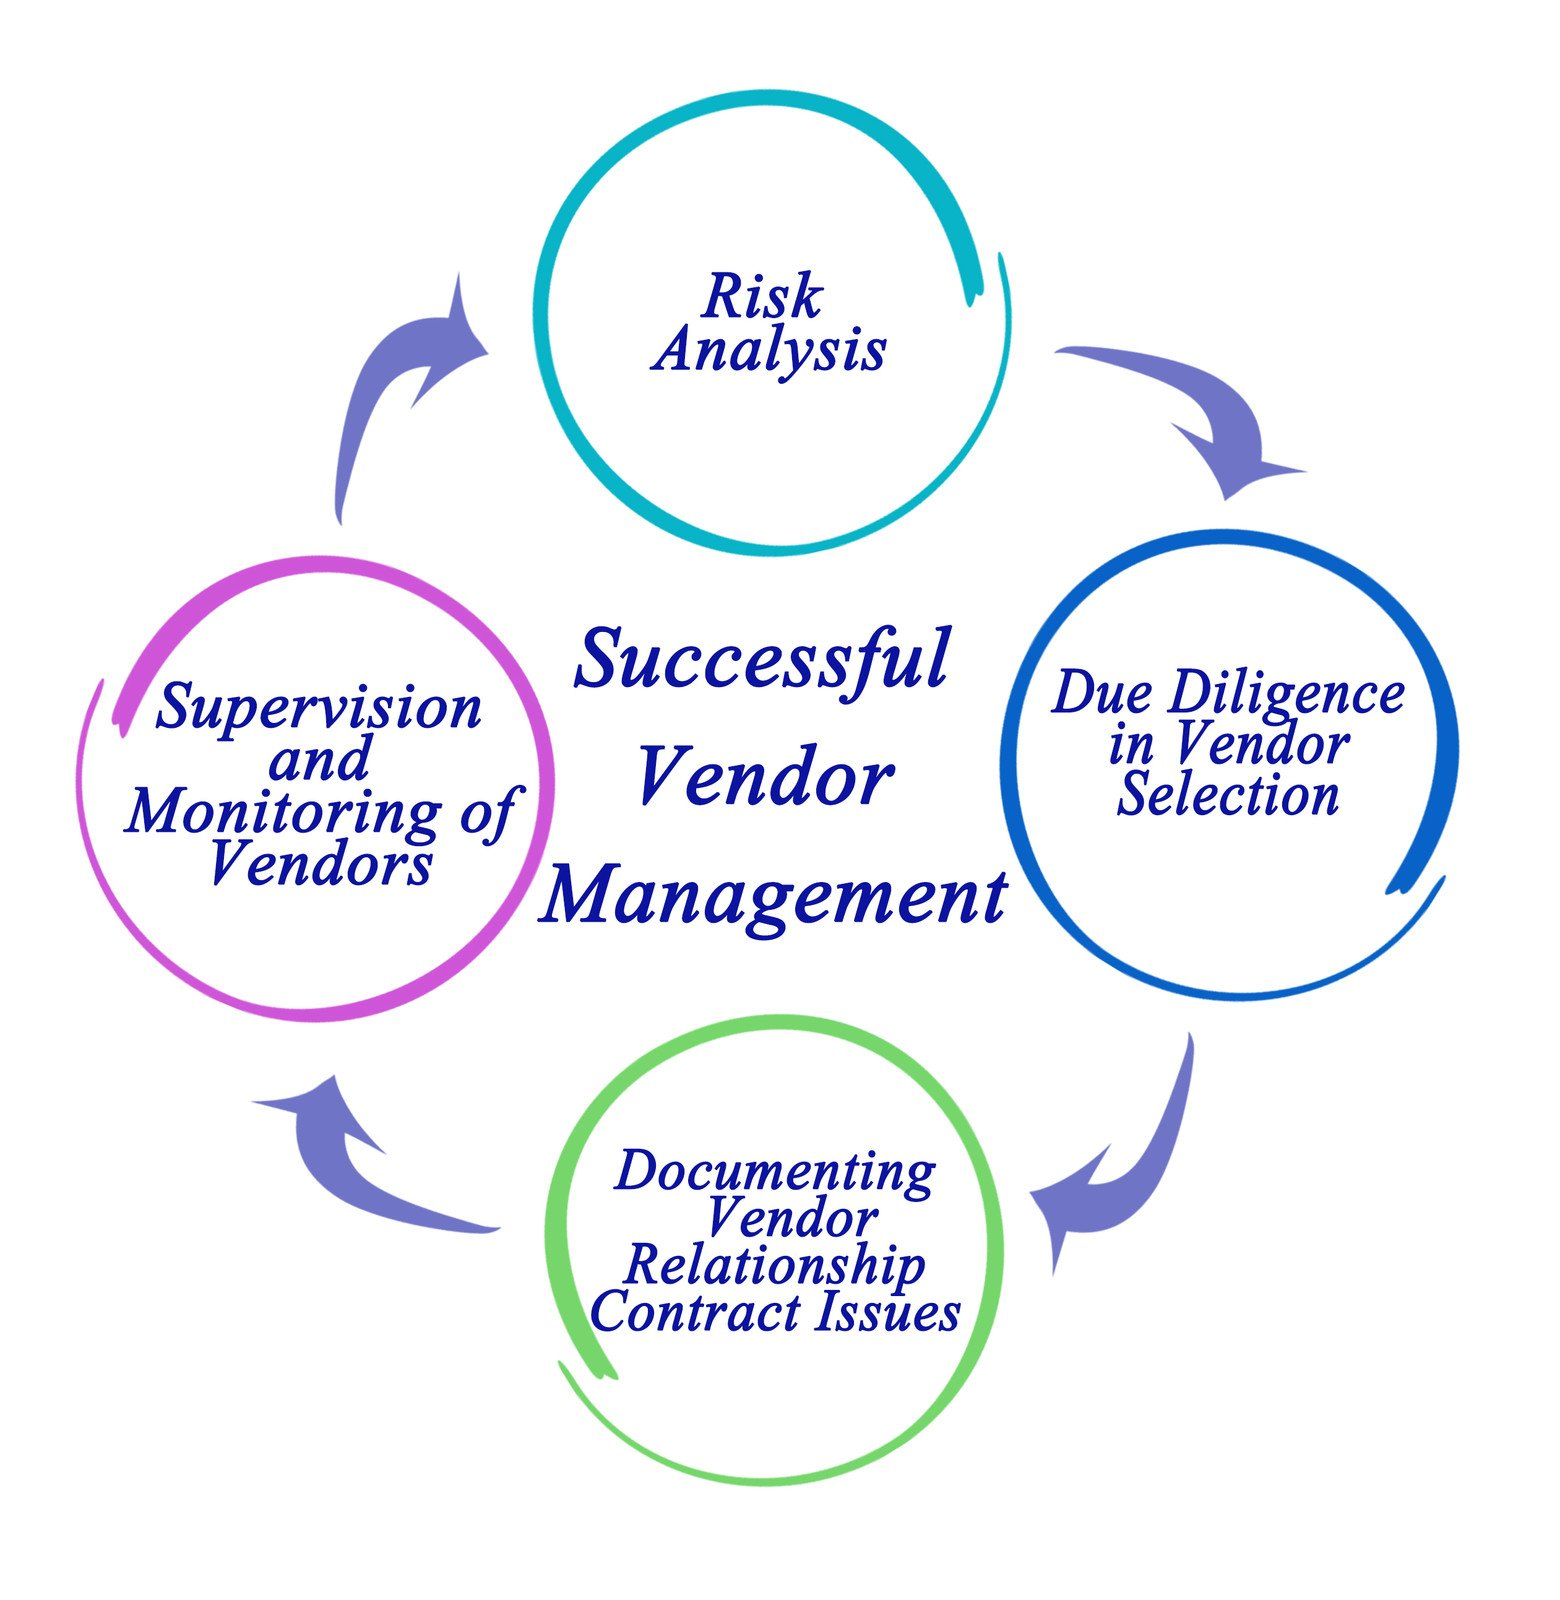 How FFIEC expects financial institutions to manage vendor risk